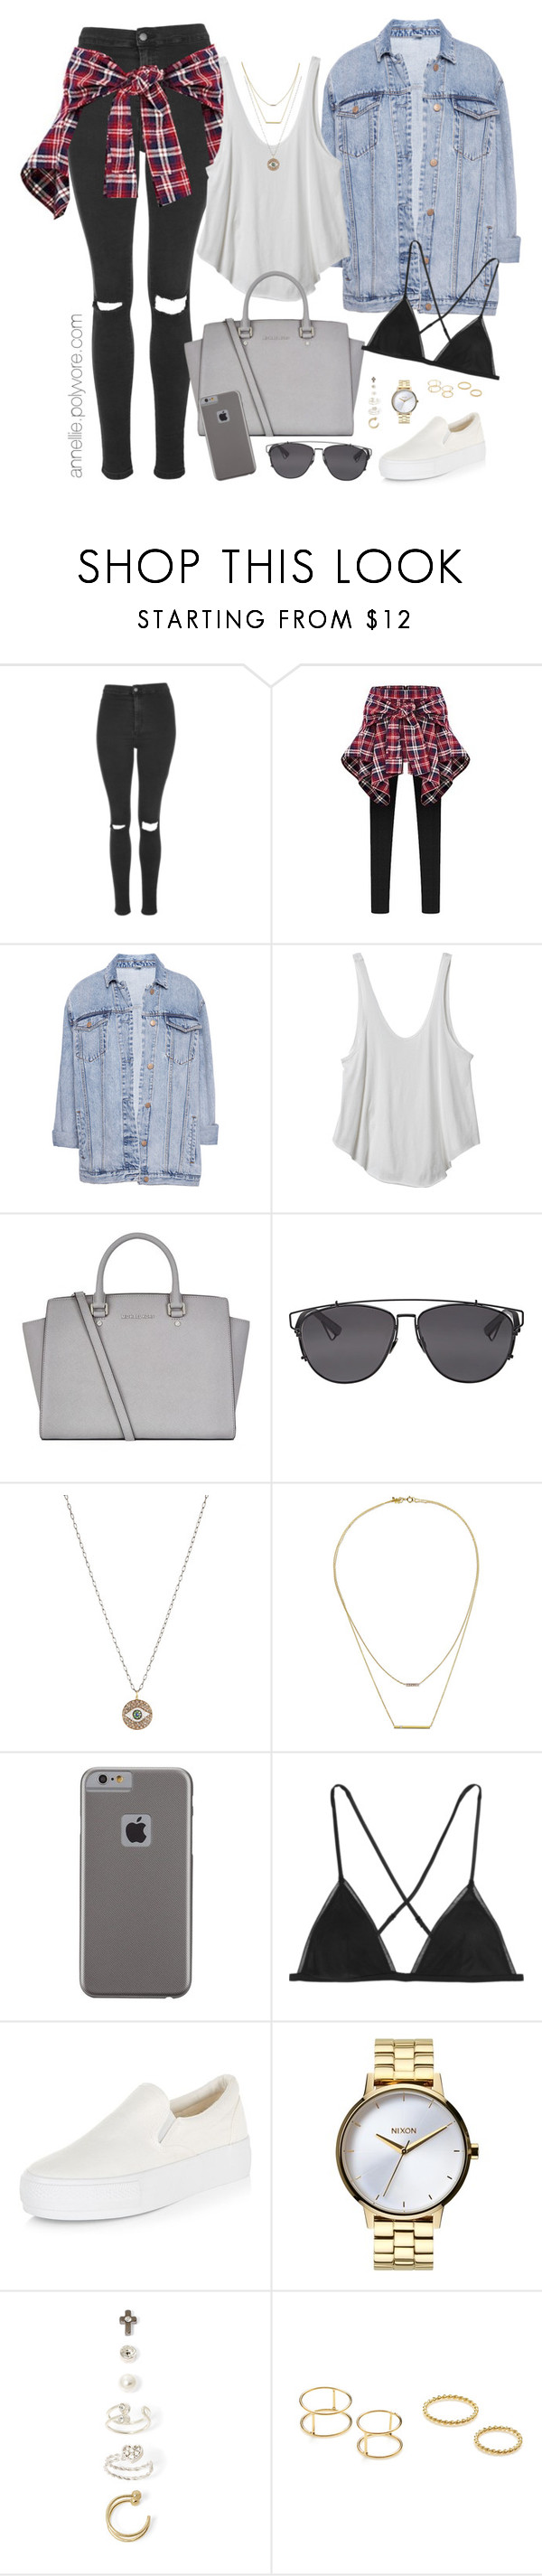 """""""Casual Street Chic"""" by annellie ❤ liked on Polyvore featuring Topshop, Pull&Bear, RVCA, MICHAEL Michael Kors, Christian Dior, Ileana Makri, Kacey K Fine Jewelry, Case-Mate, Kiki de Montparnasse and Nixon"""